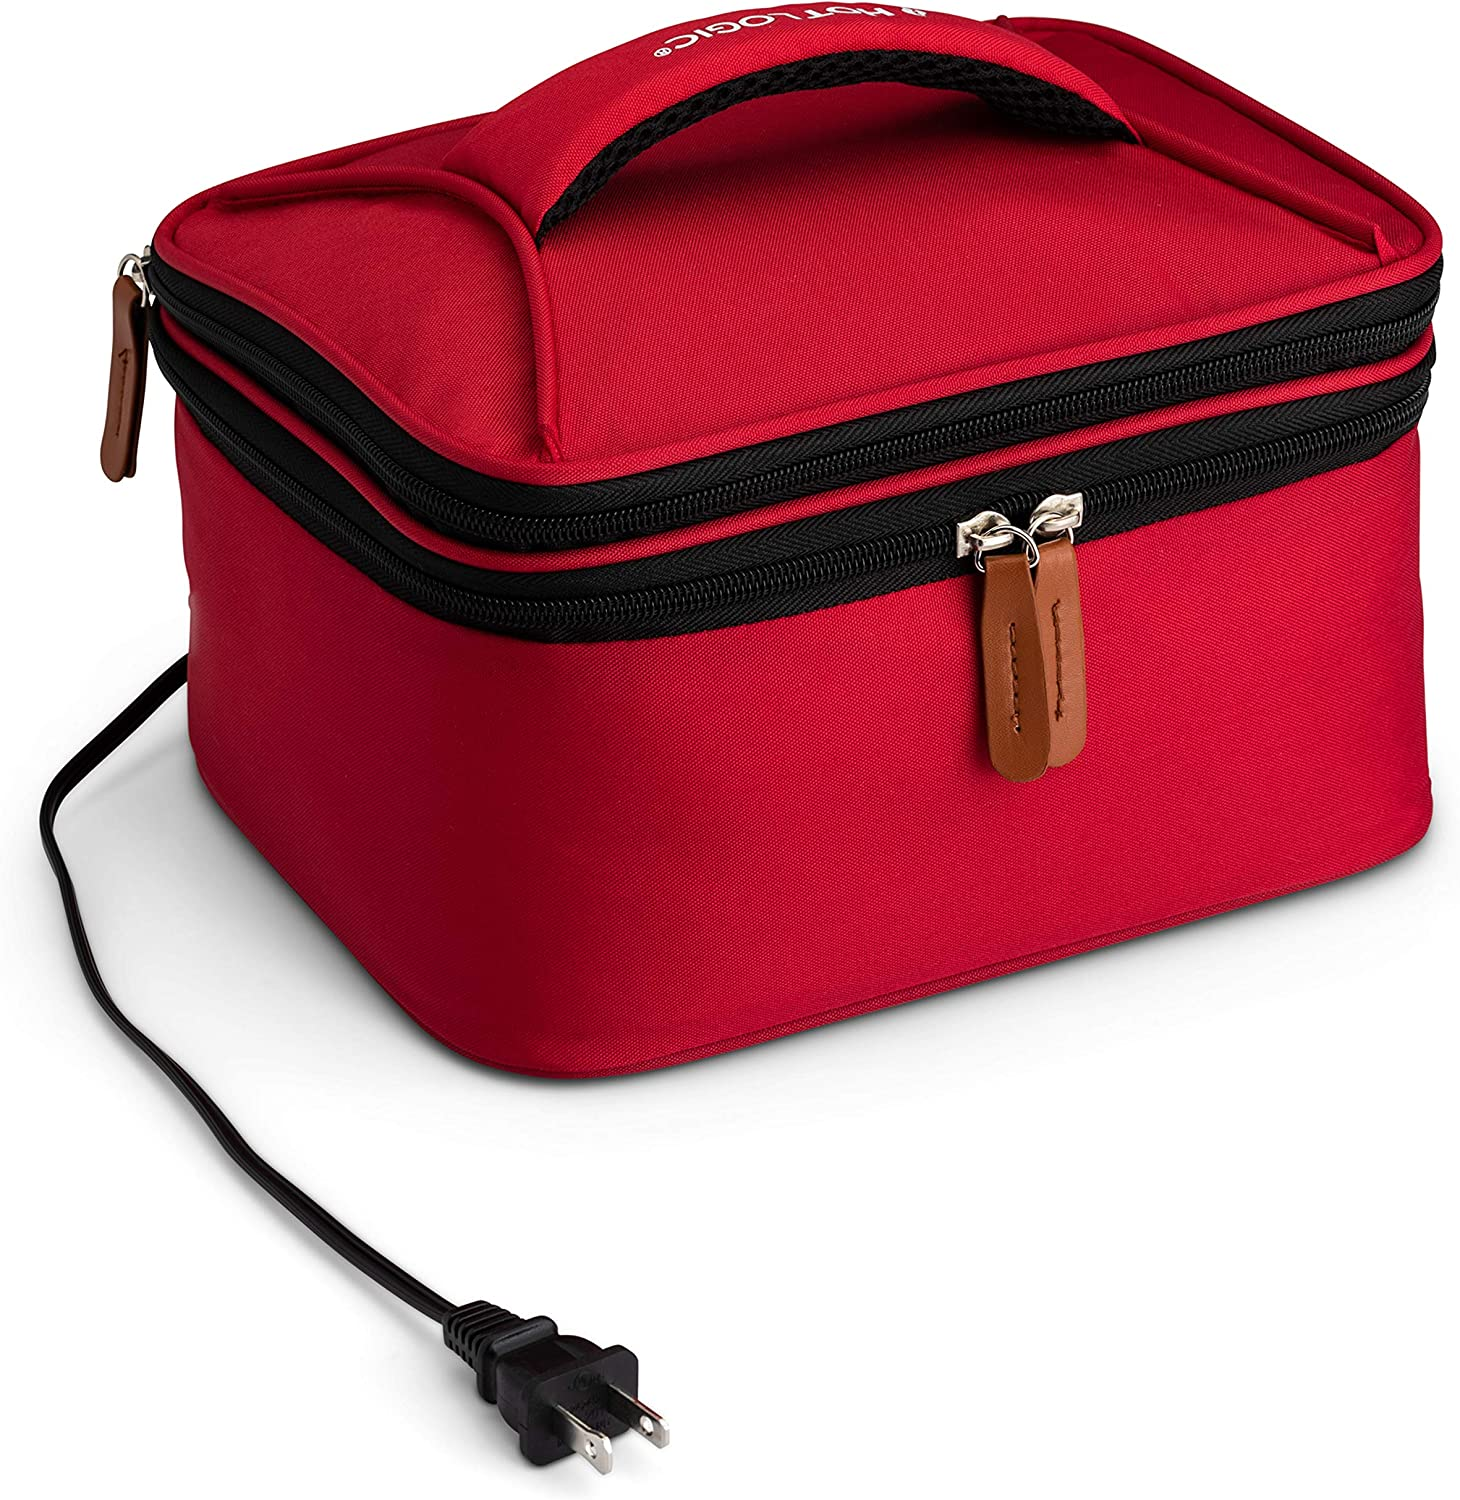 HotLogic 16801169-RD Food Warming Tote Lunch Bag Plus 120V, Red